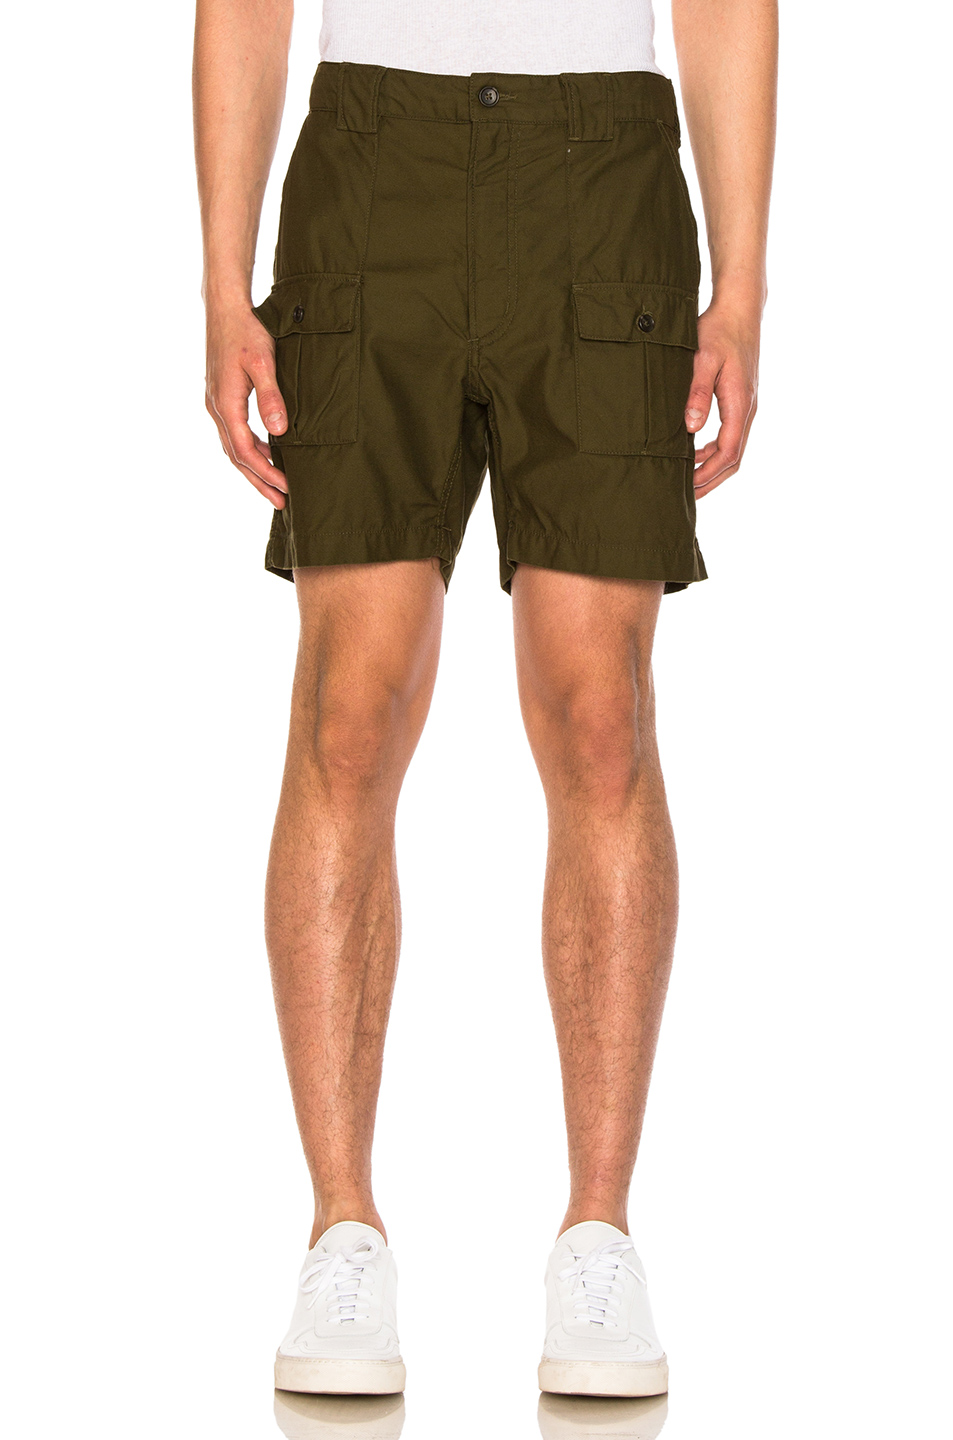 Engineered Garments Ranger Shorts in Green